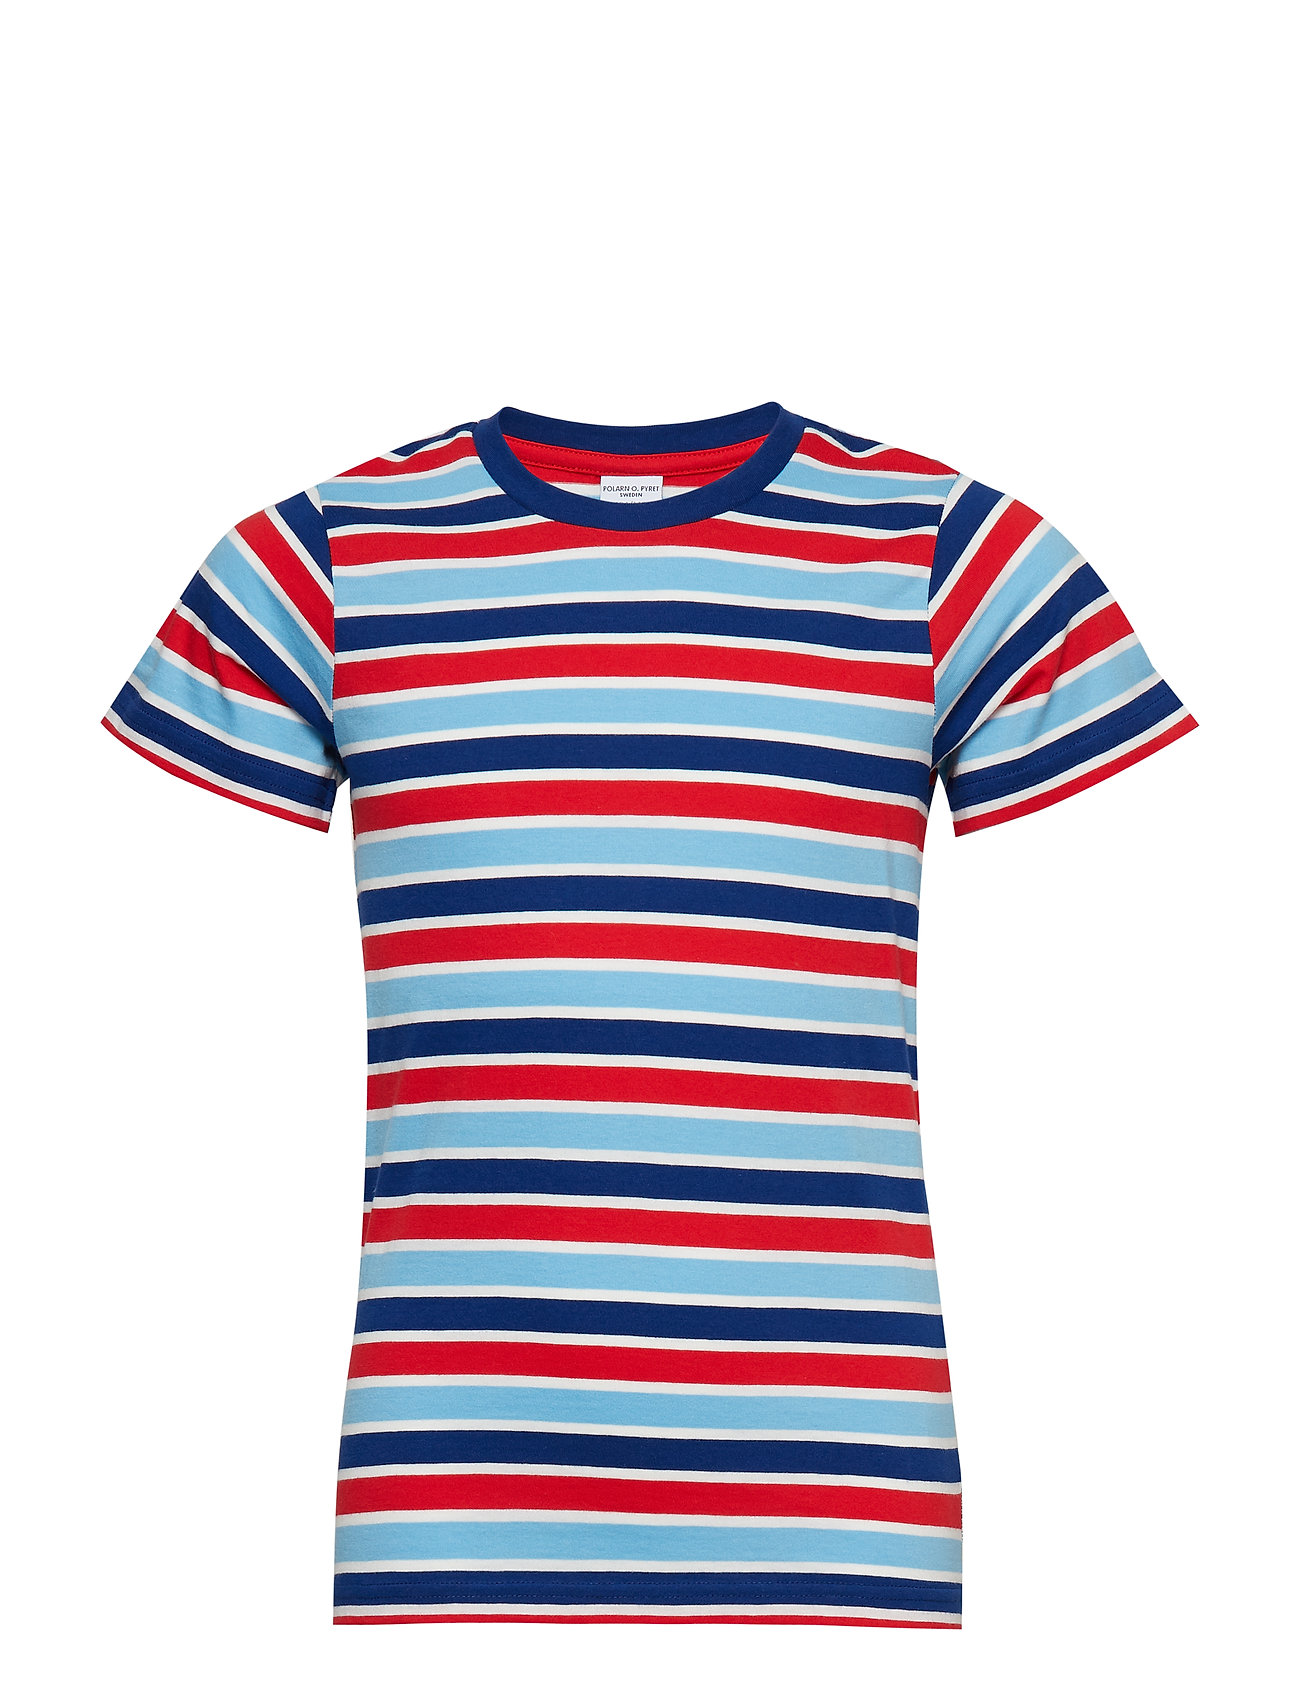 Polarn O. Pyret T-Shirt striped S/S striped School